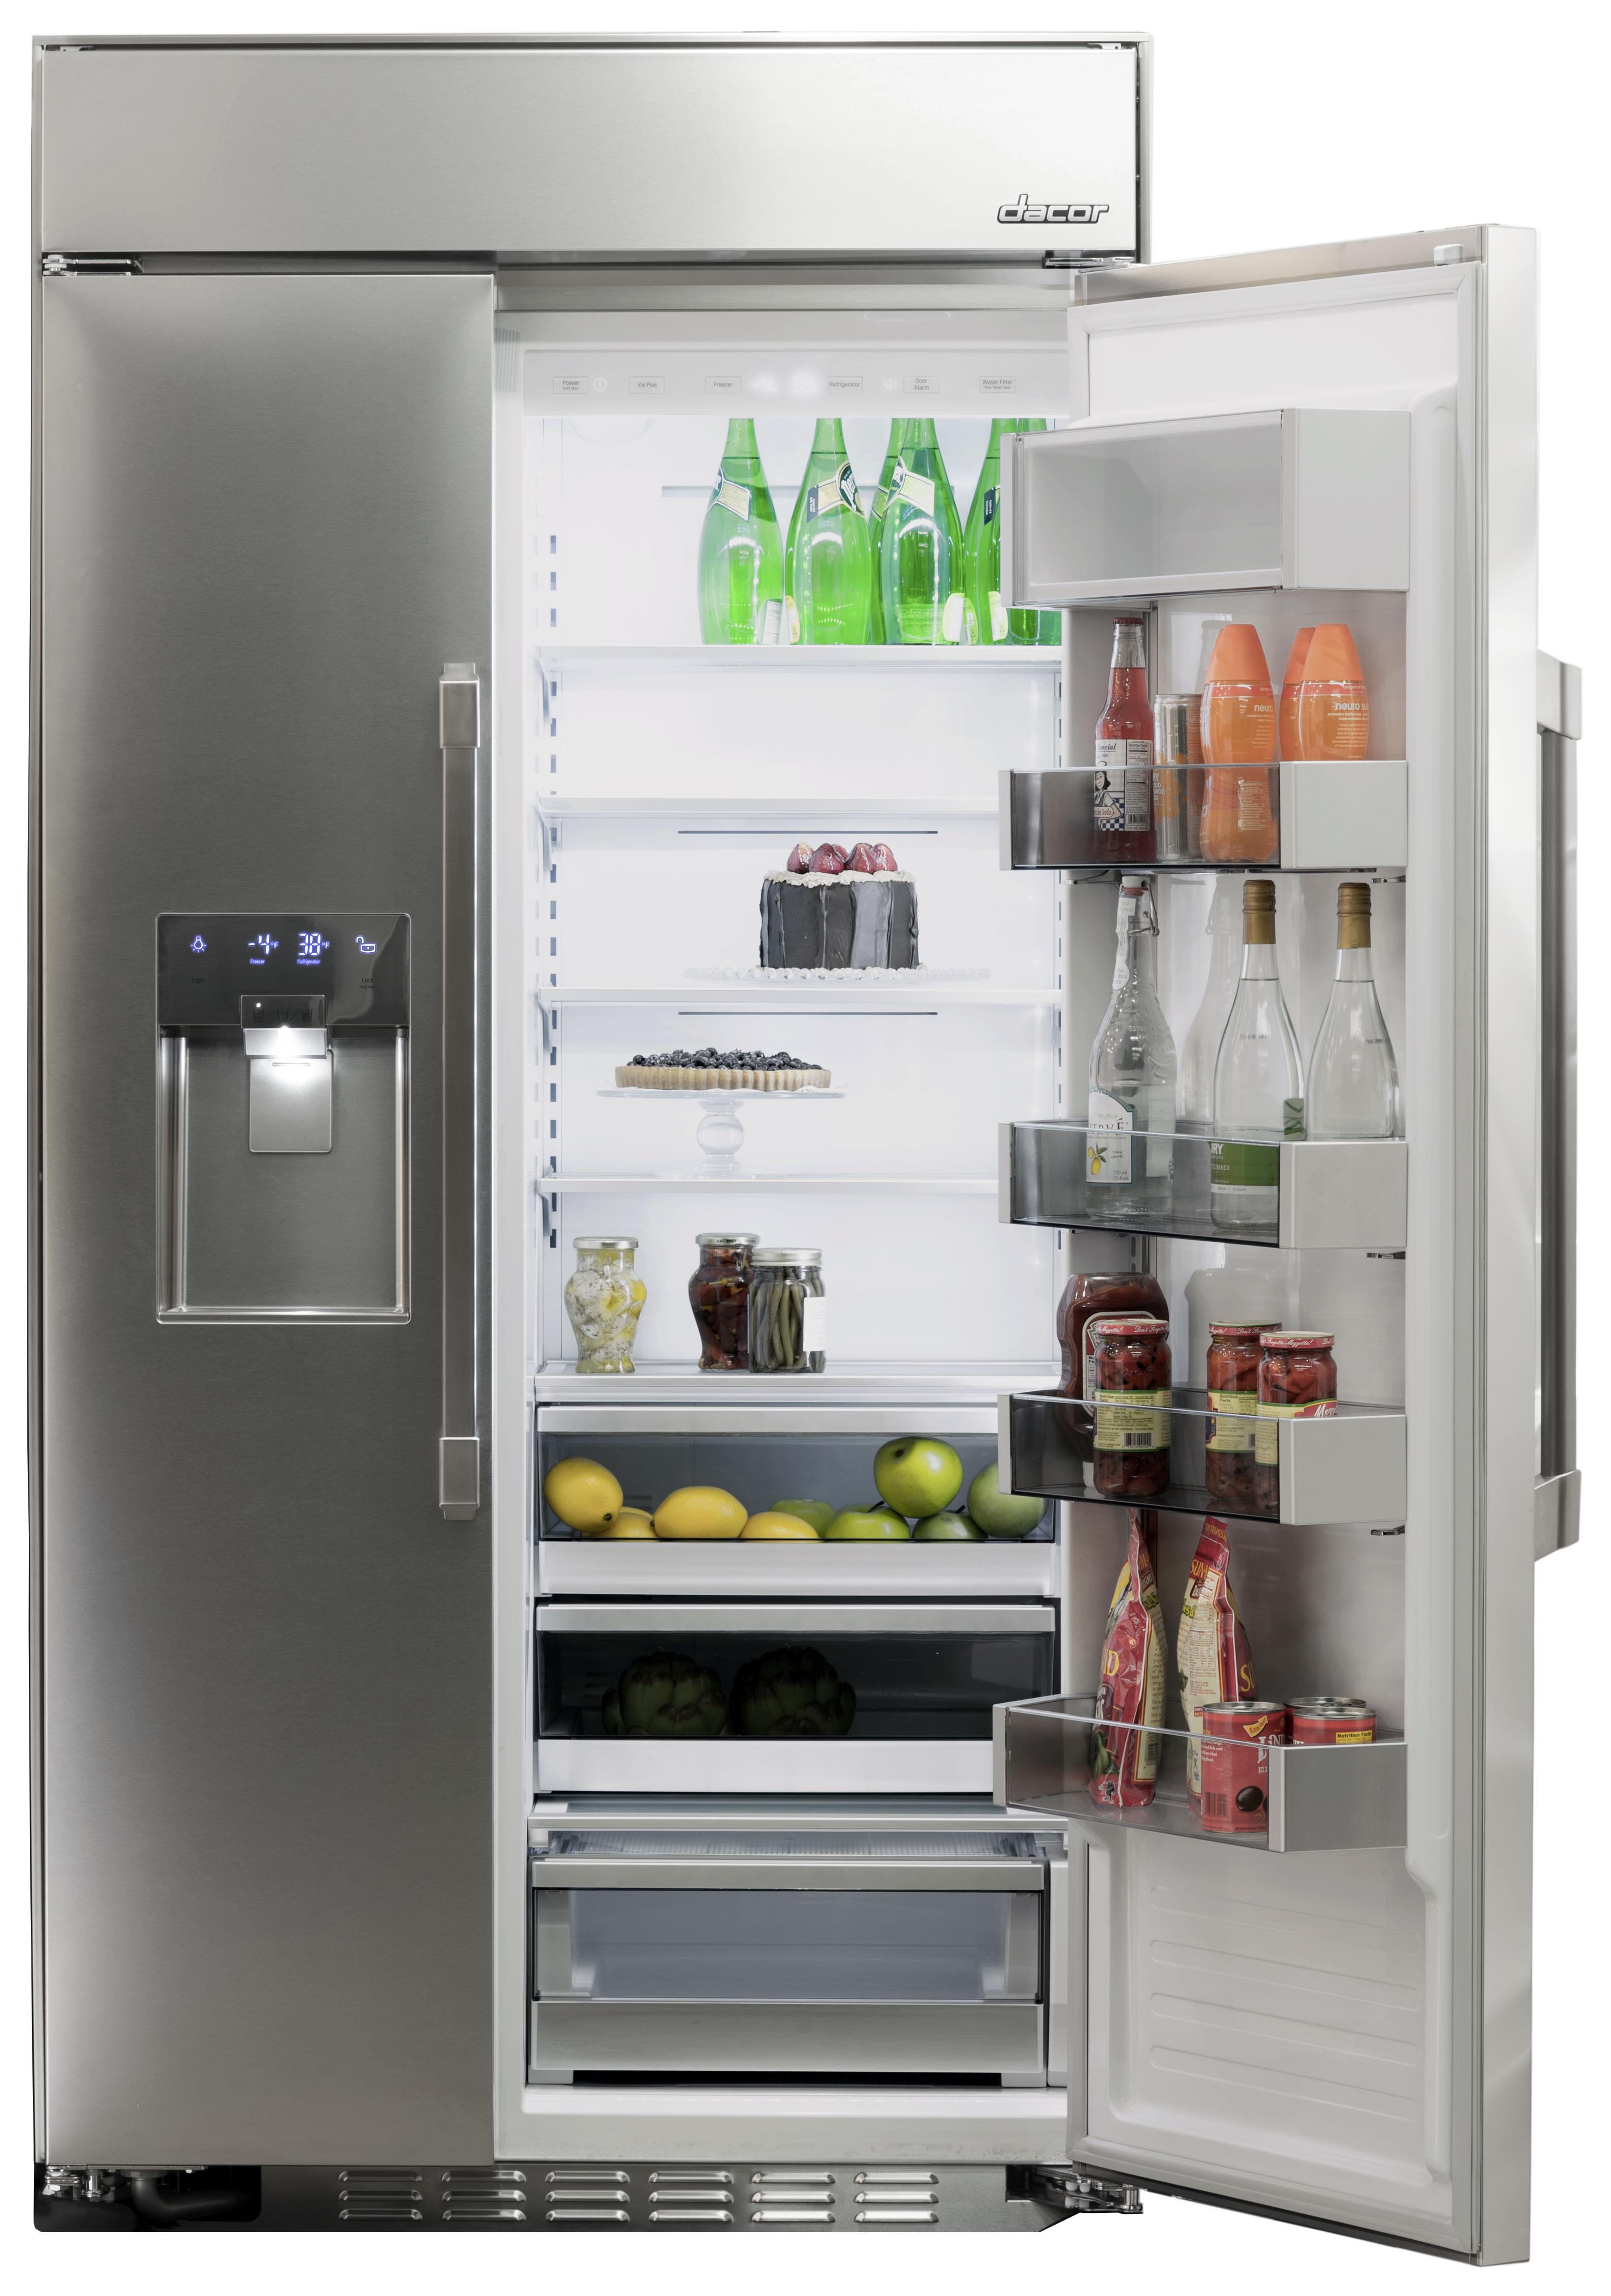 Dacor introduces discovery 42 inch built in side by side for Dacor 42 refrigerator